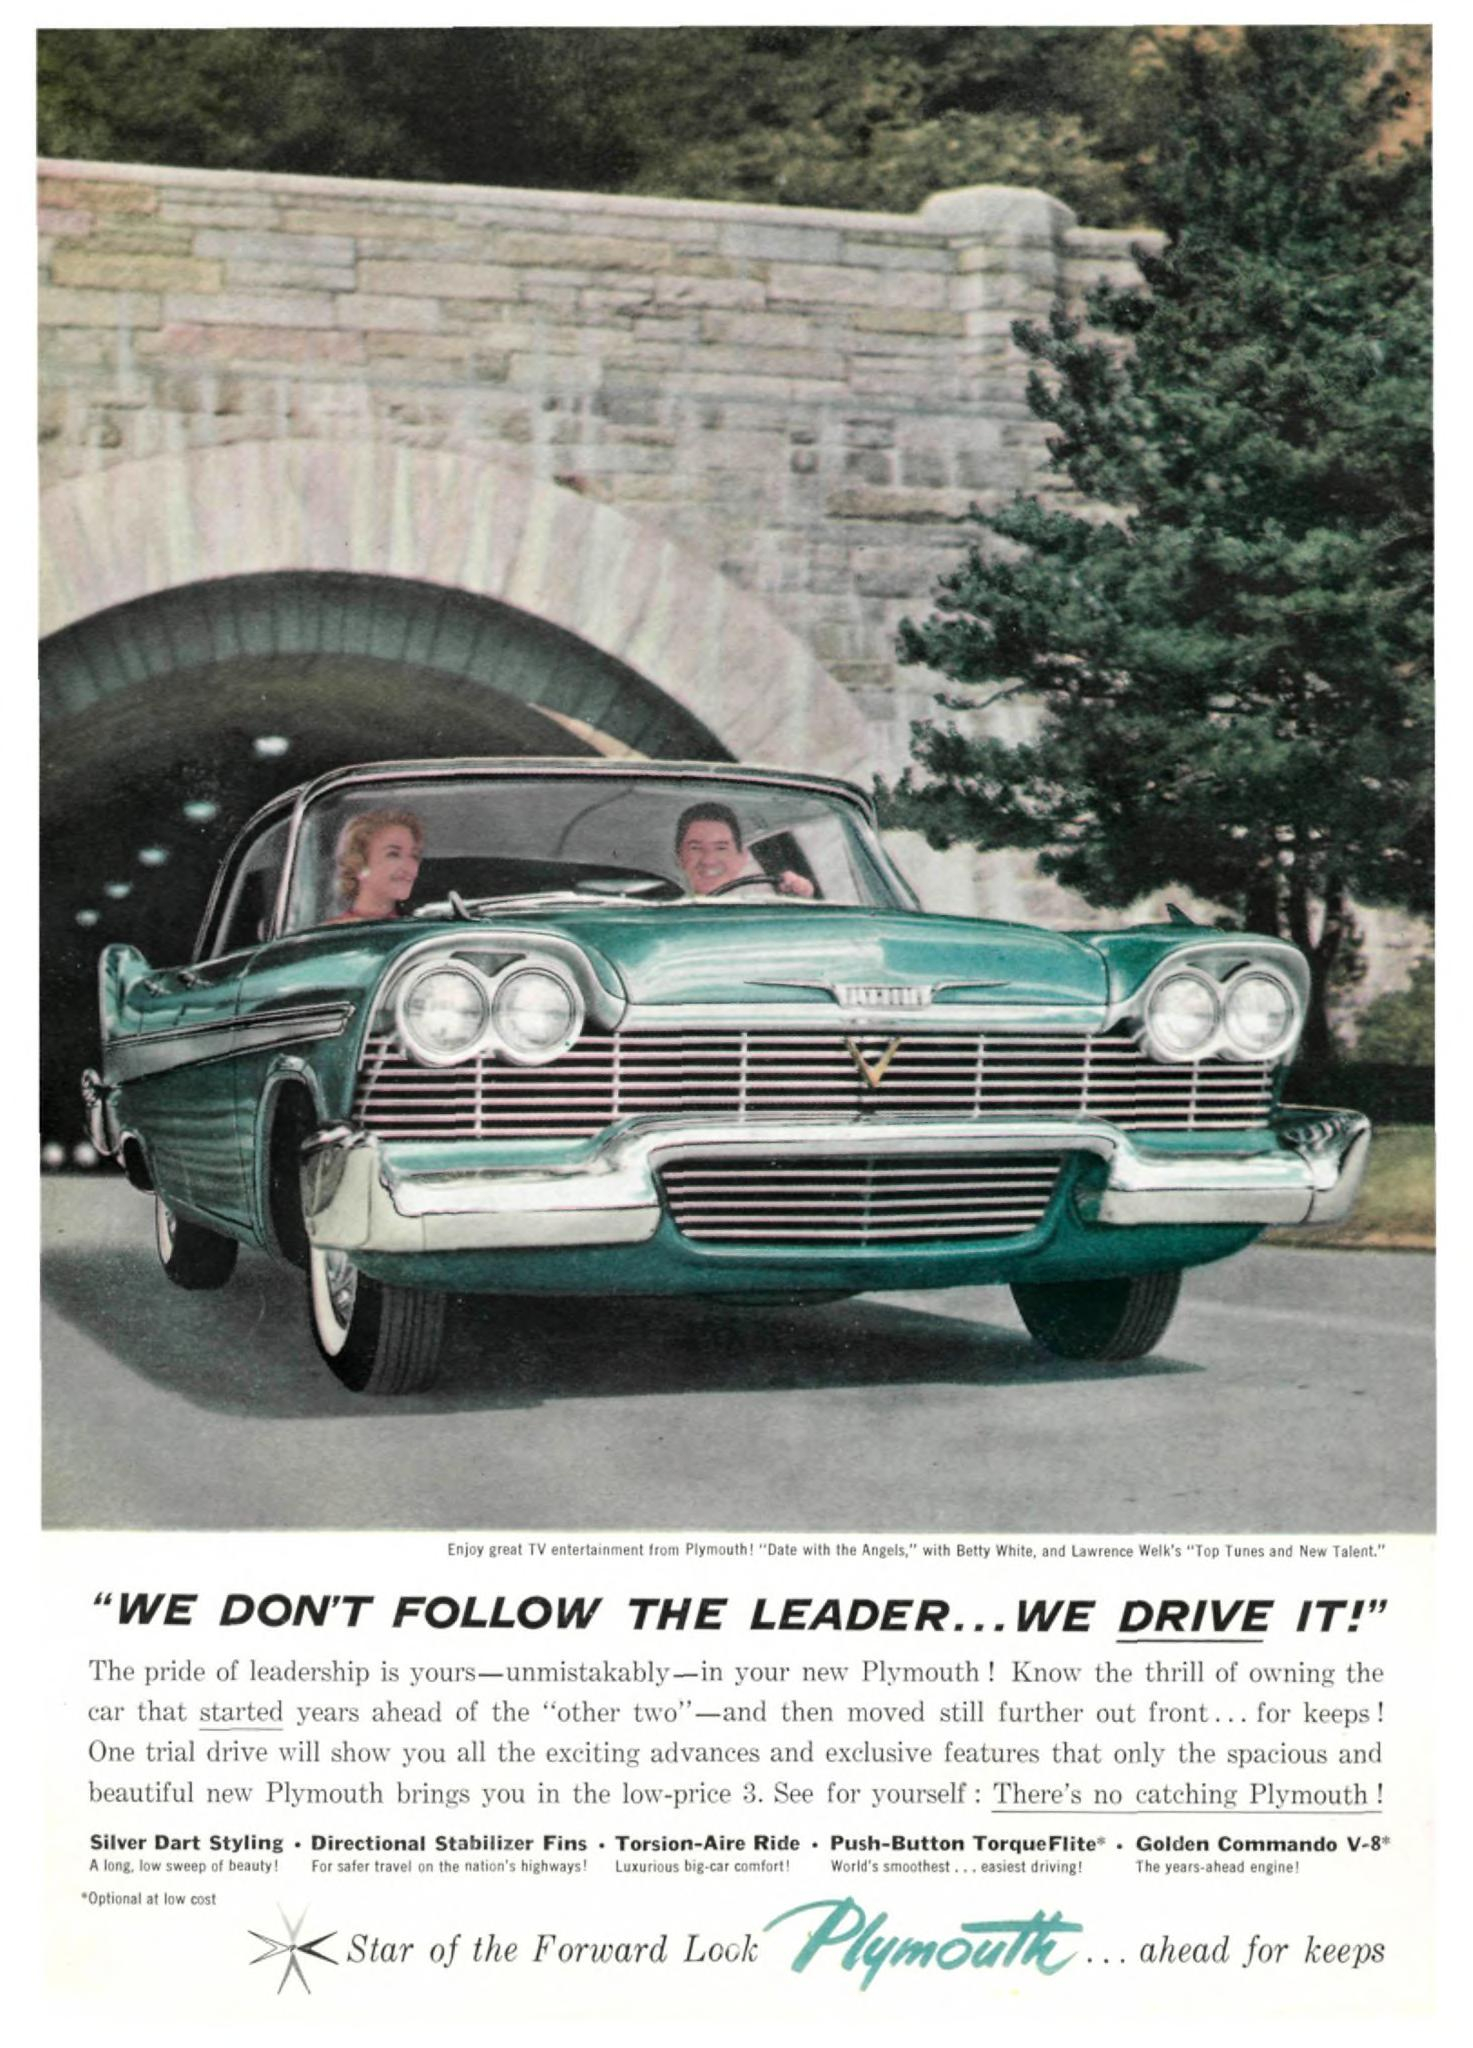 1957 Plymouth - published in Sports Illustrated - December 2, 1957